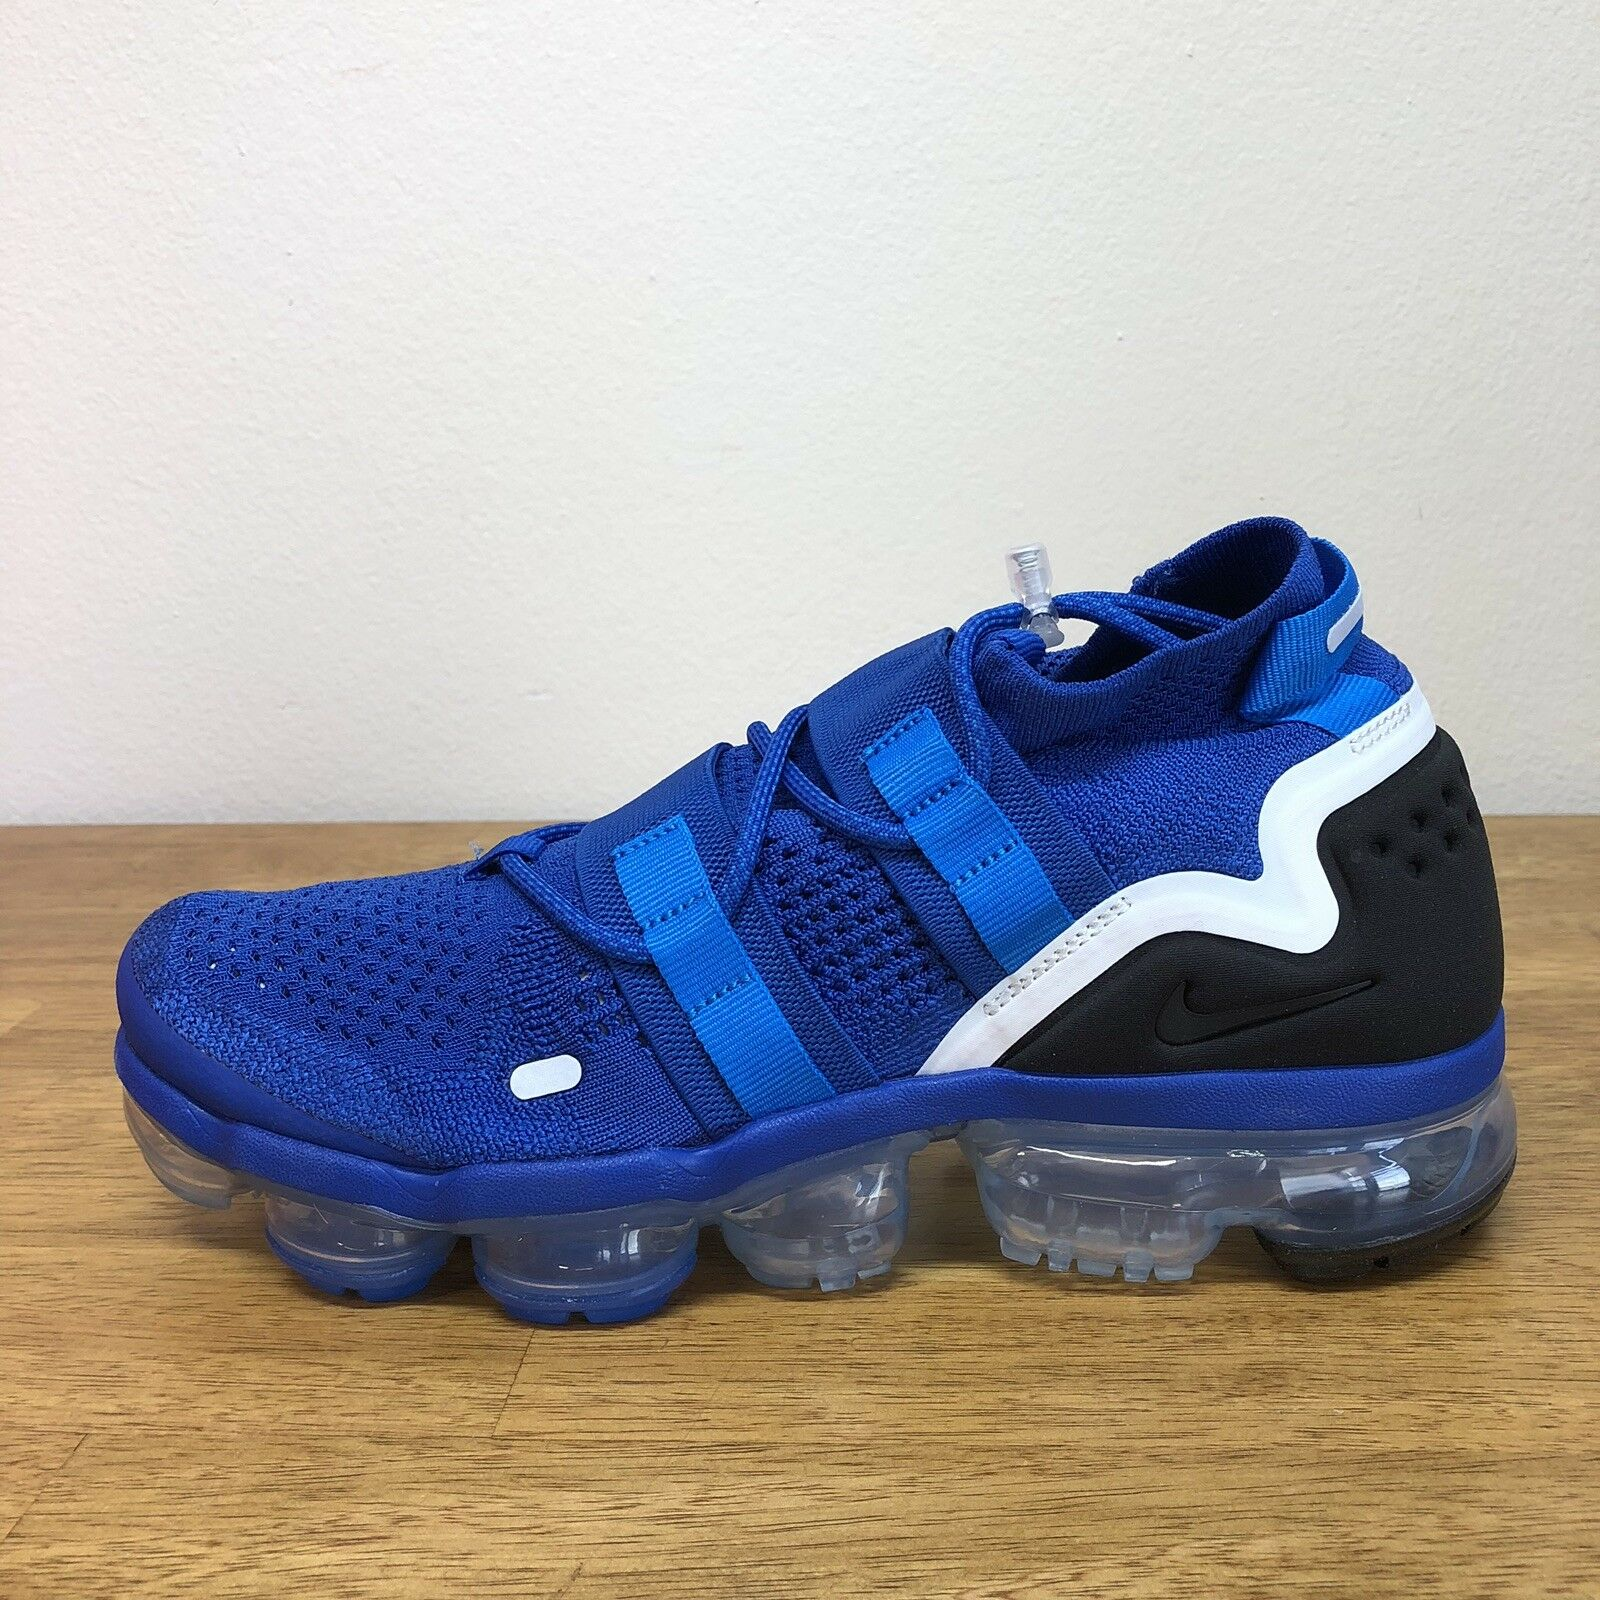 Nike Air VaporMax FK Utility Flyknit Game Royal bluee AH6834-400 Men's Size 8.5